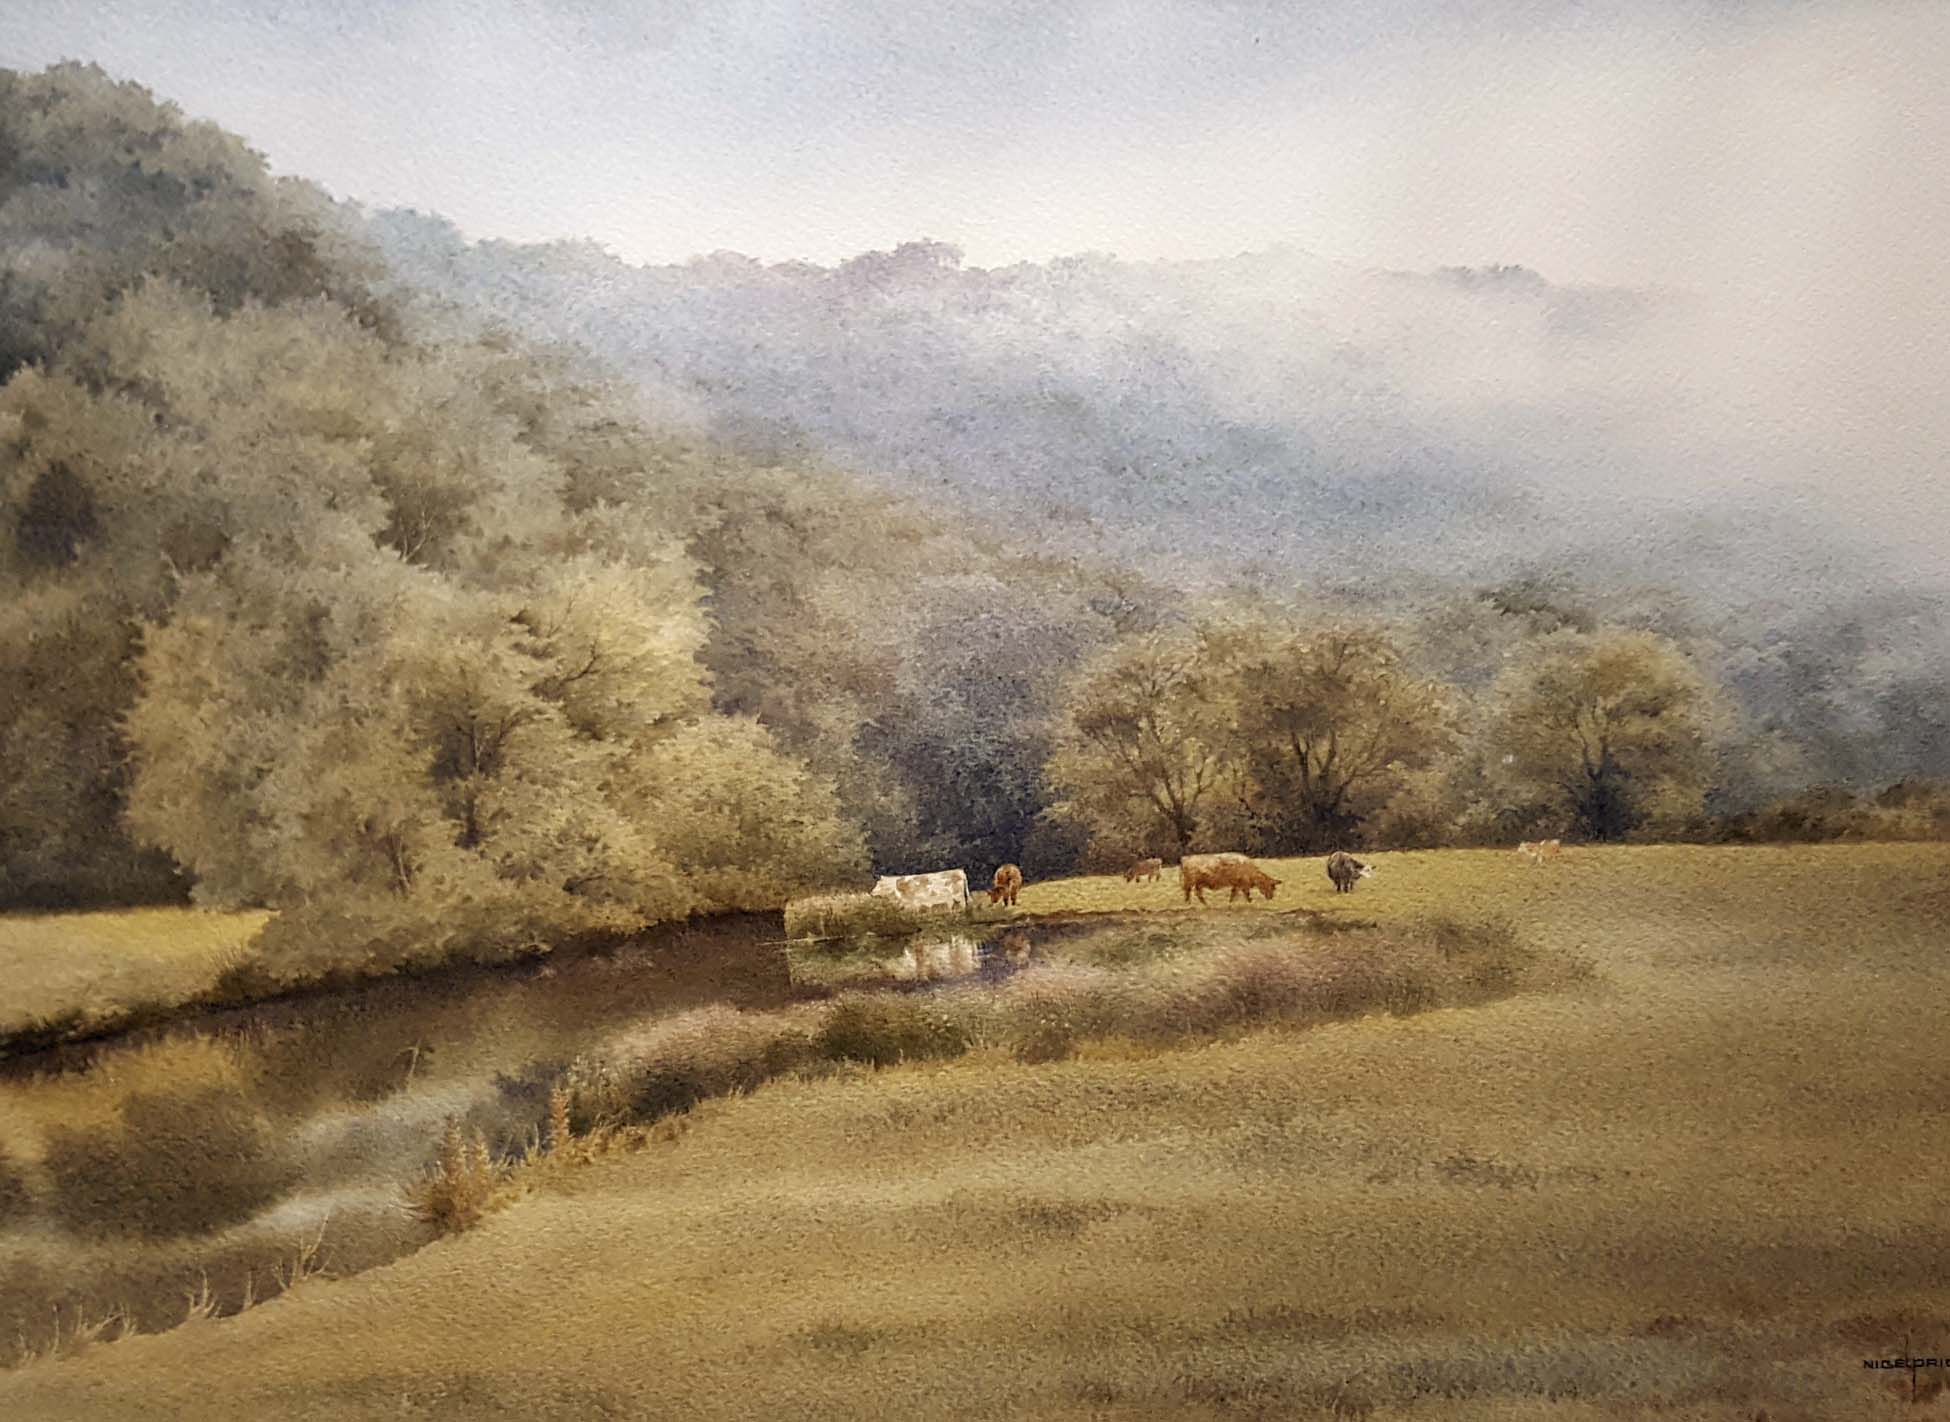 """Grazing by the River Wye"" by Nigel Price"